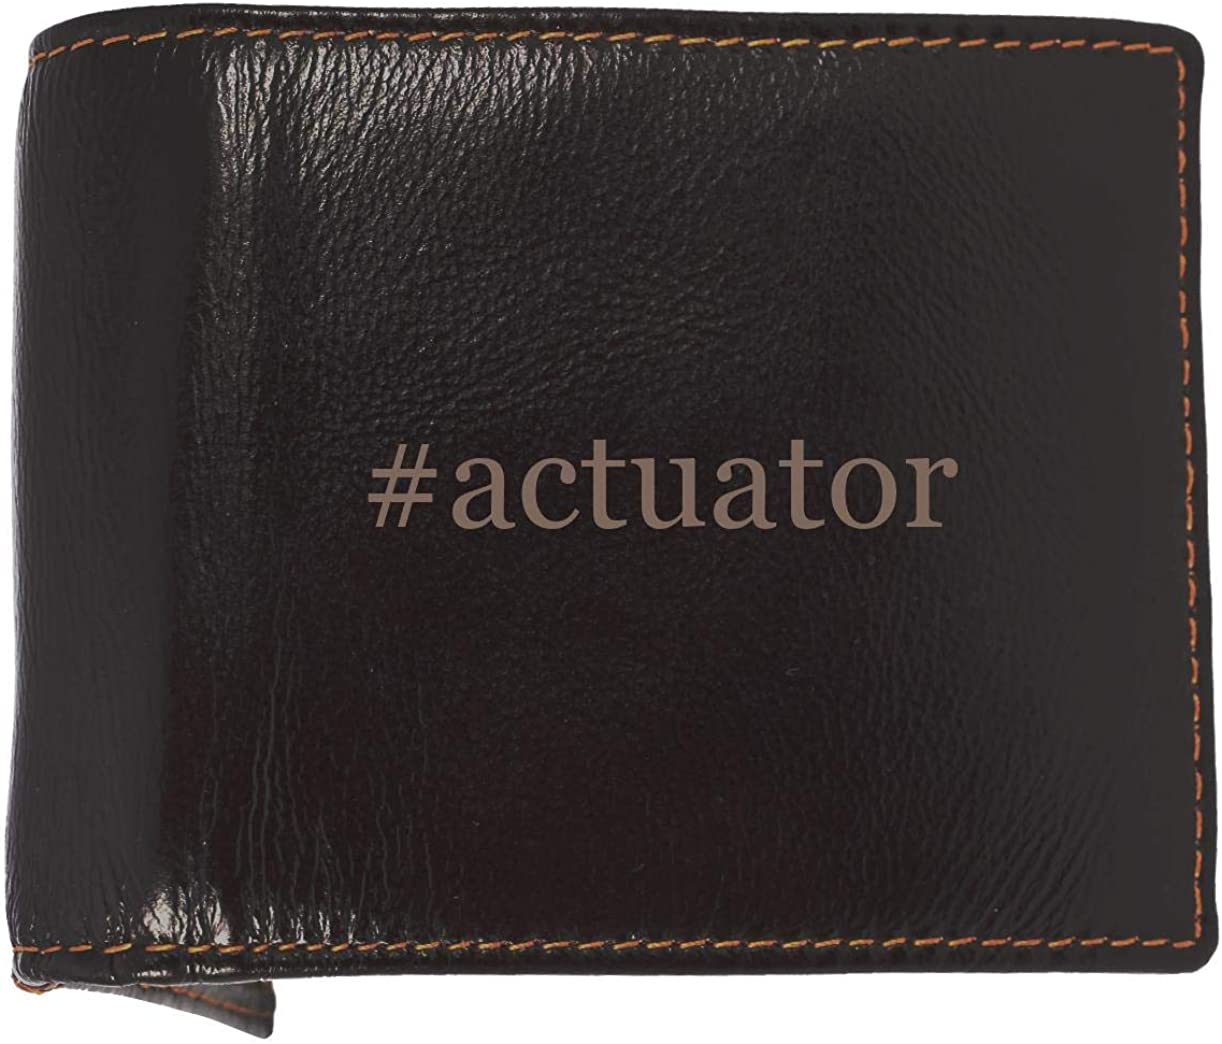 #actuator - Soft Hashtag Cowhide Genuine Engraved Bifold Leather Wallet 61UWq-0f8BL